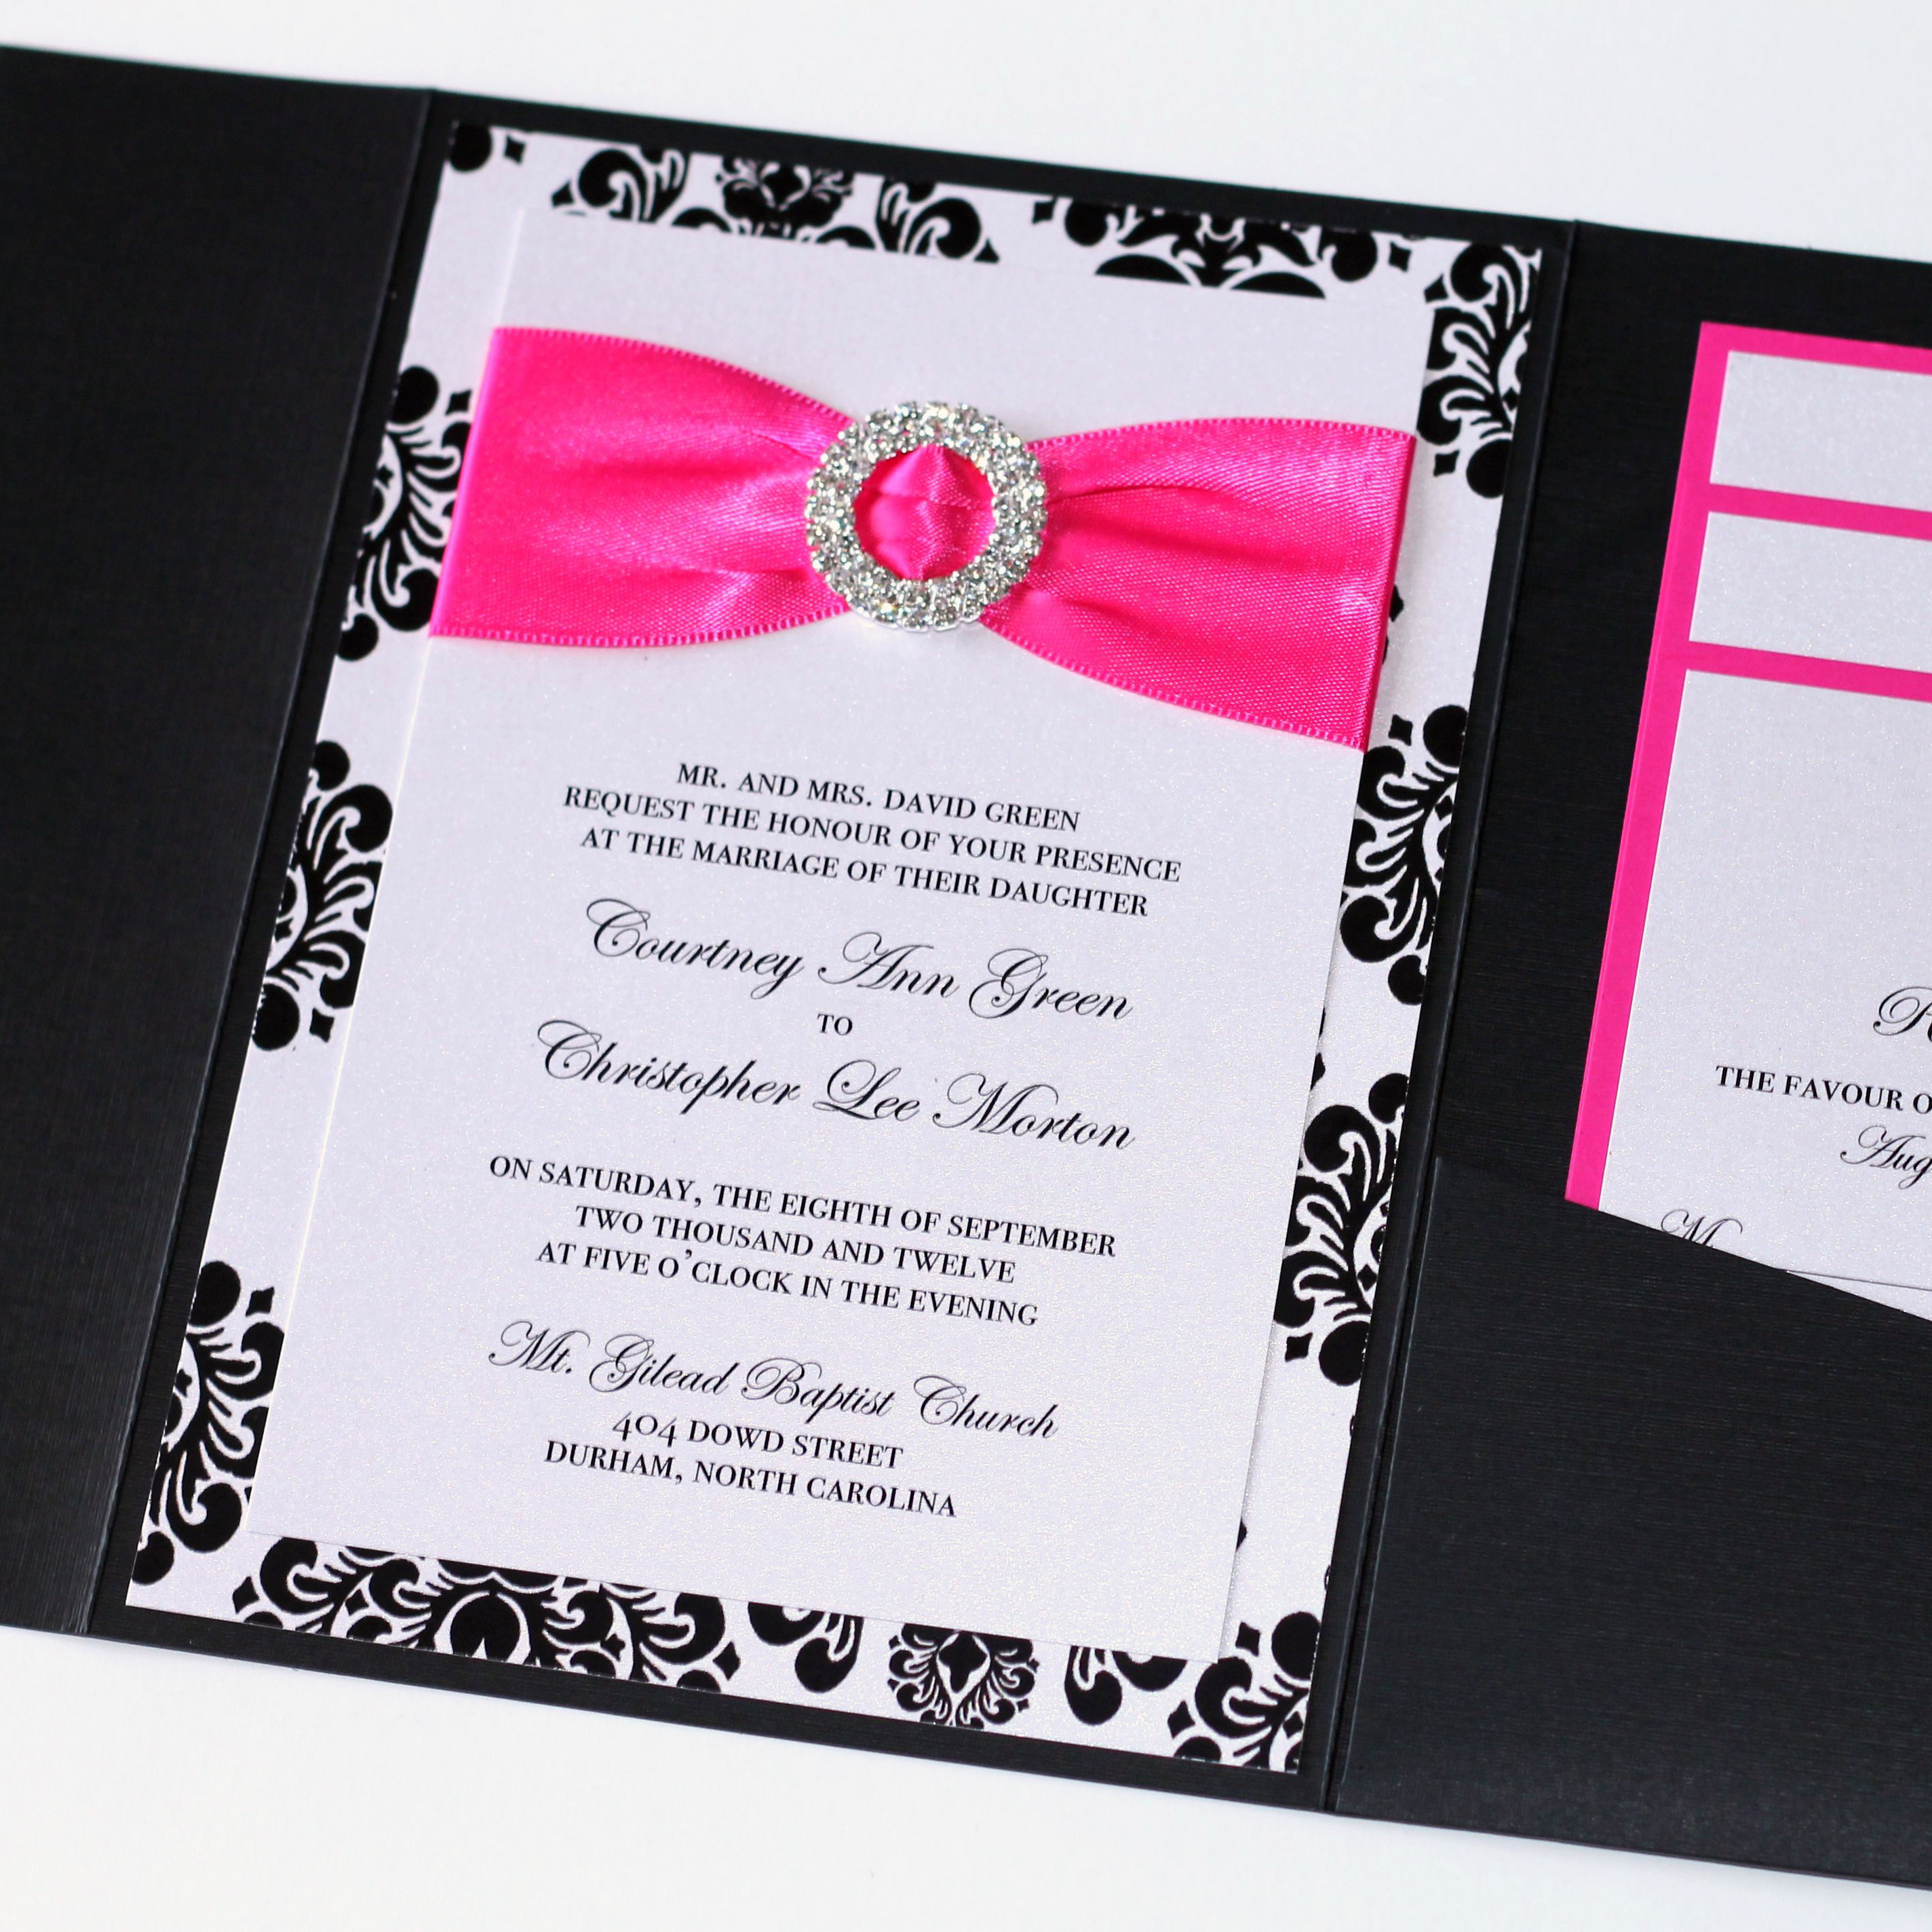 IMG_4115